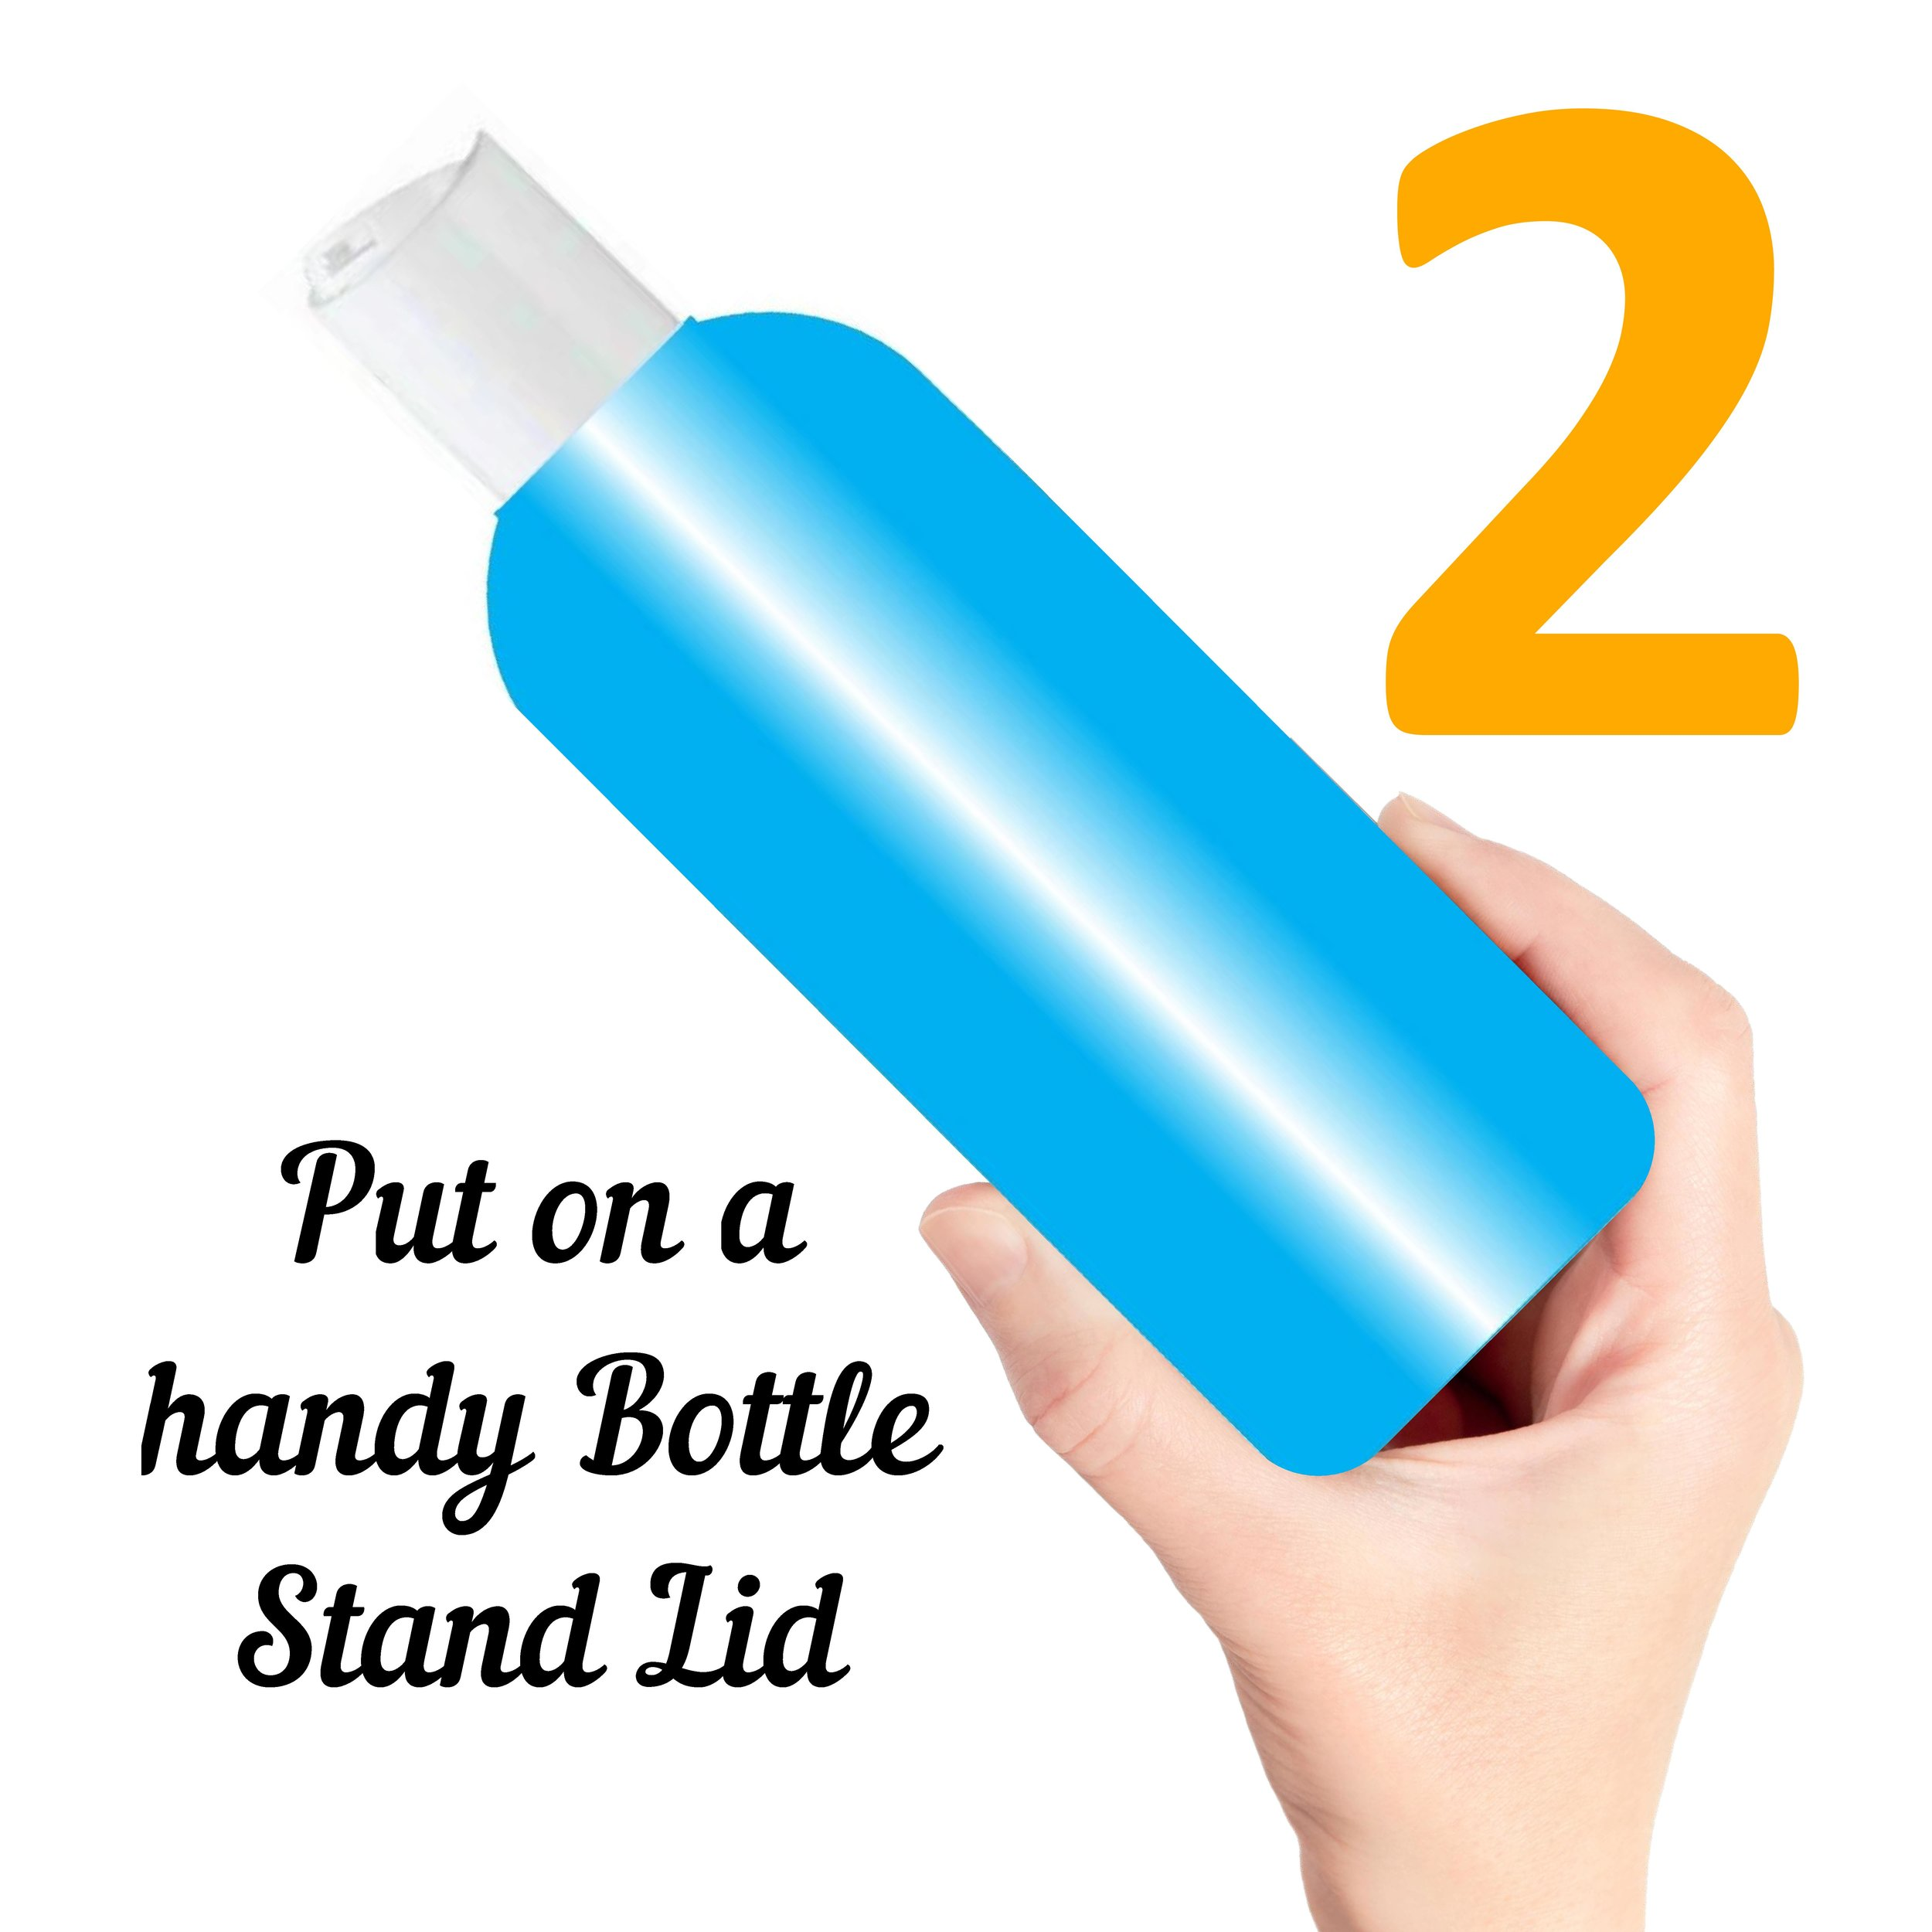 The Bottle Stand 2 (1-2-3).jpg